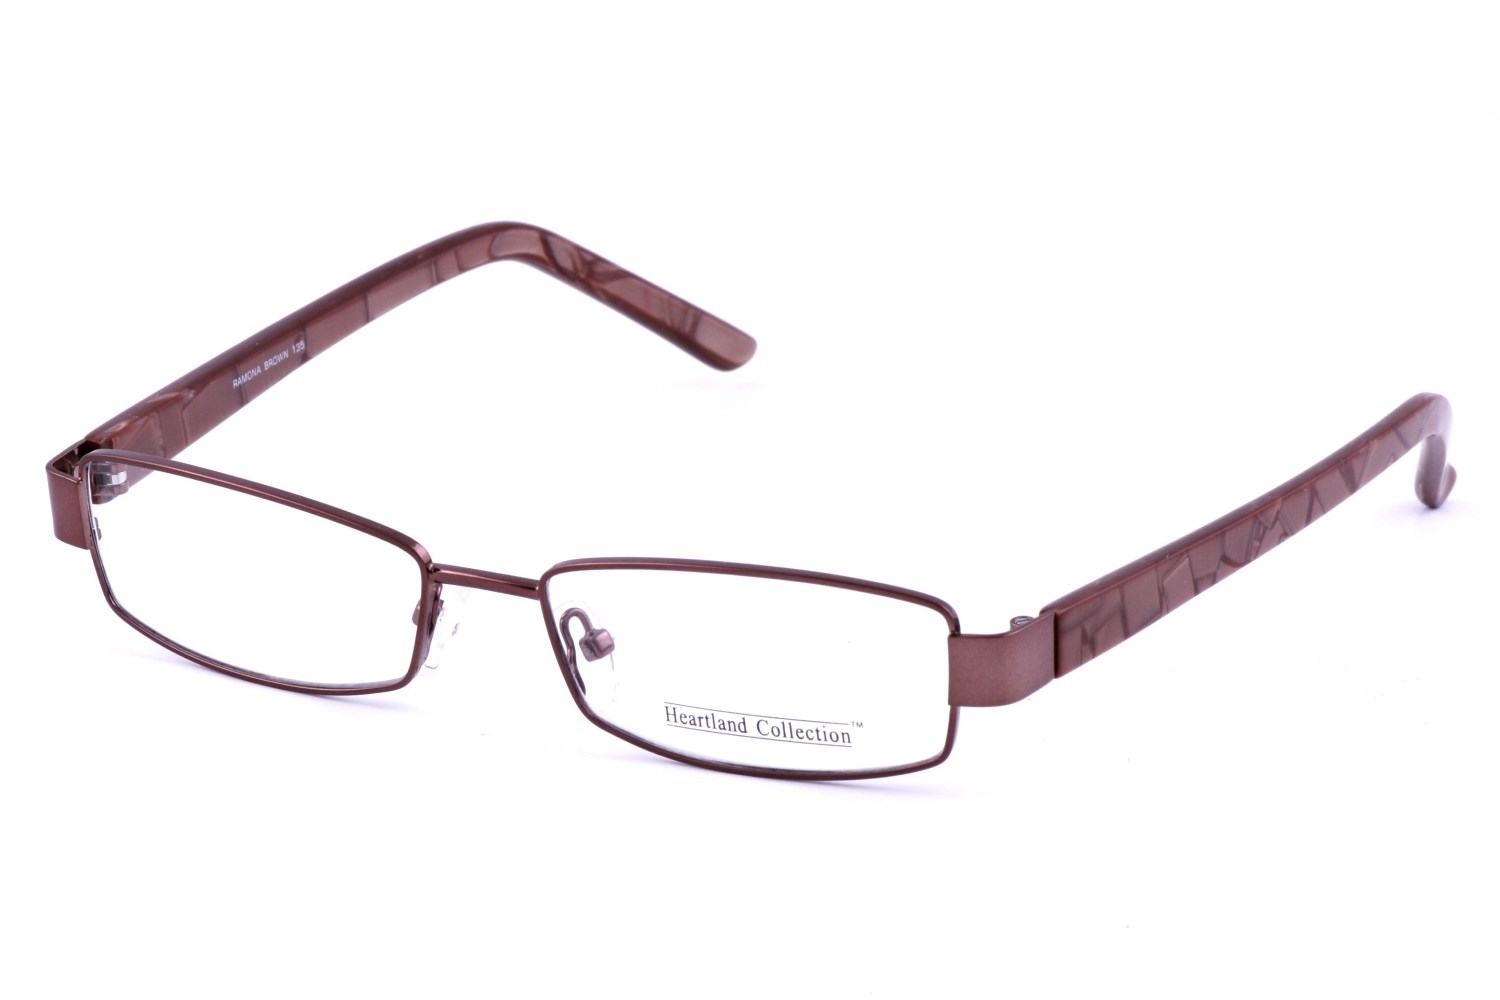 Heartland Ramona Prescription Eyeglasses Frames